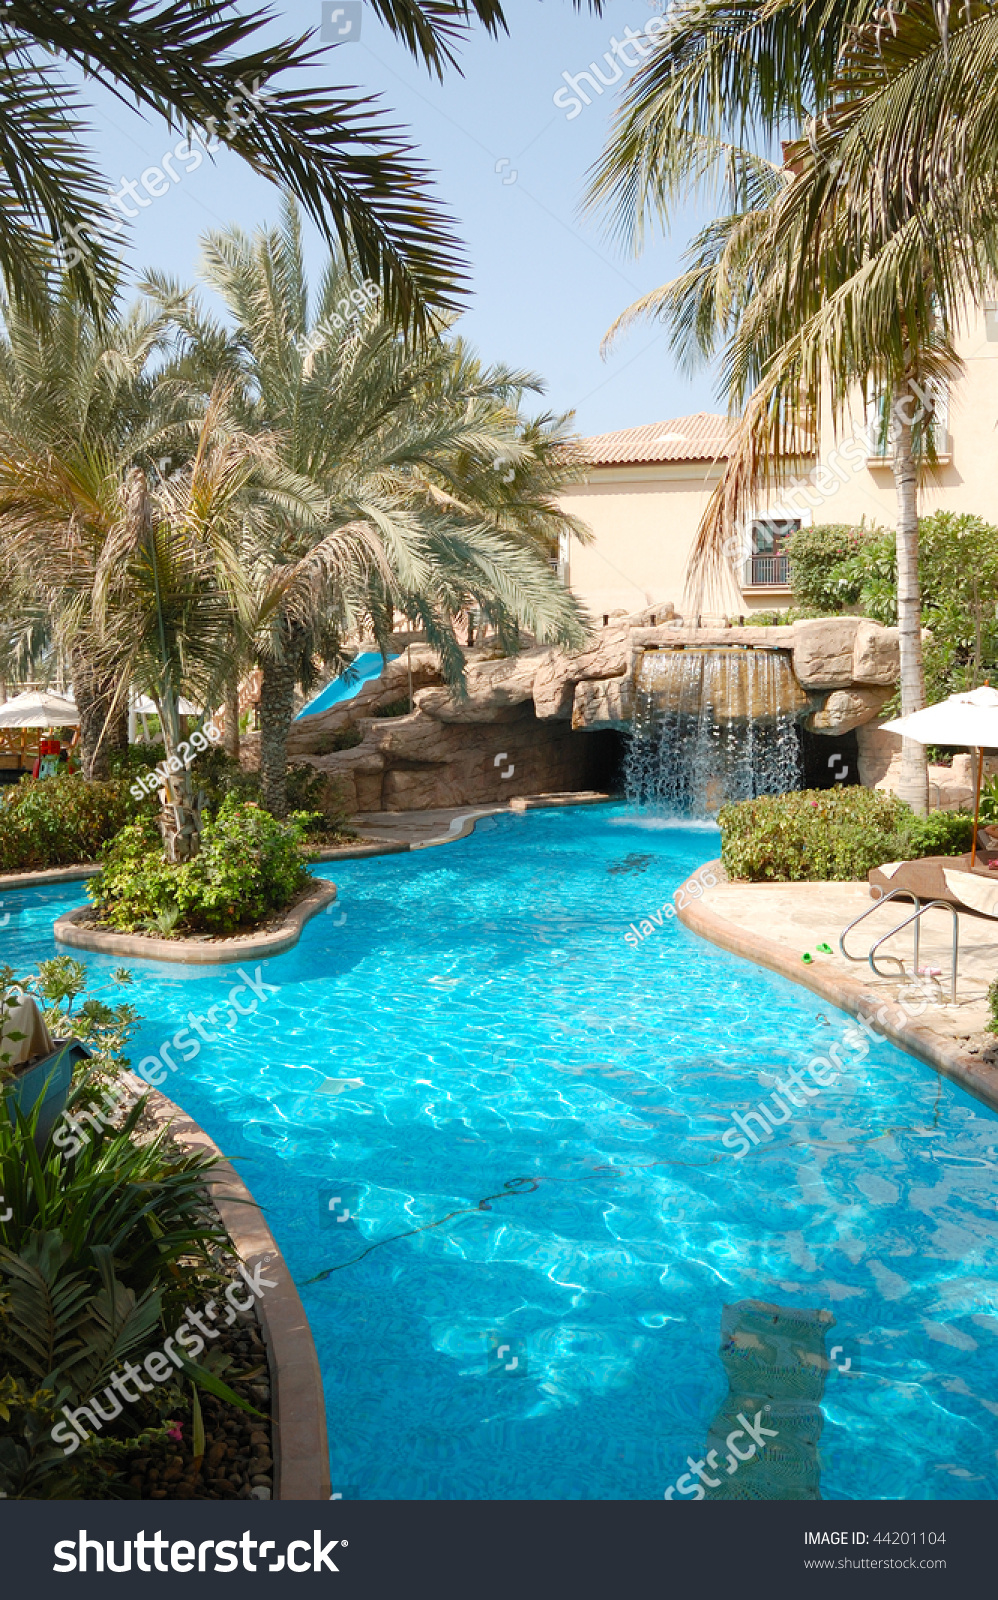 Swimming Pool Luxury Hotel Dubai United Stock Photo 44201104 Shutterstock